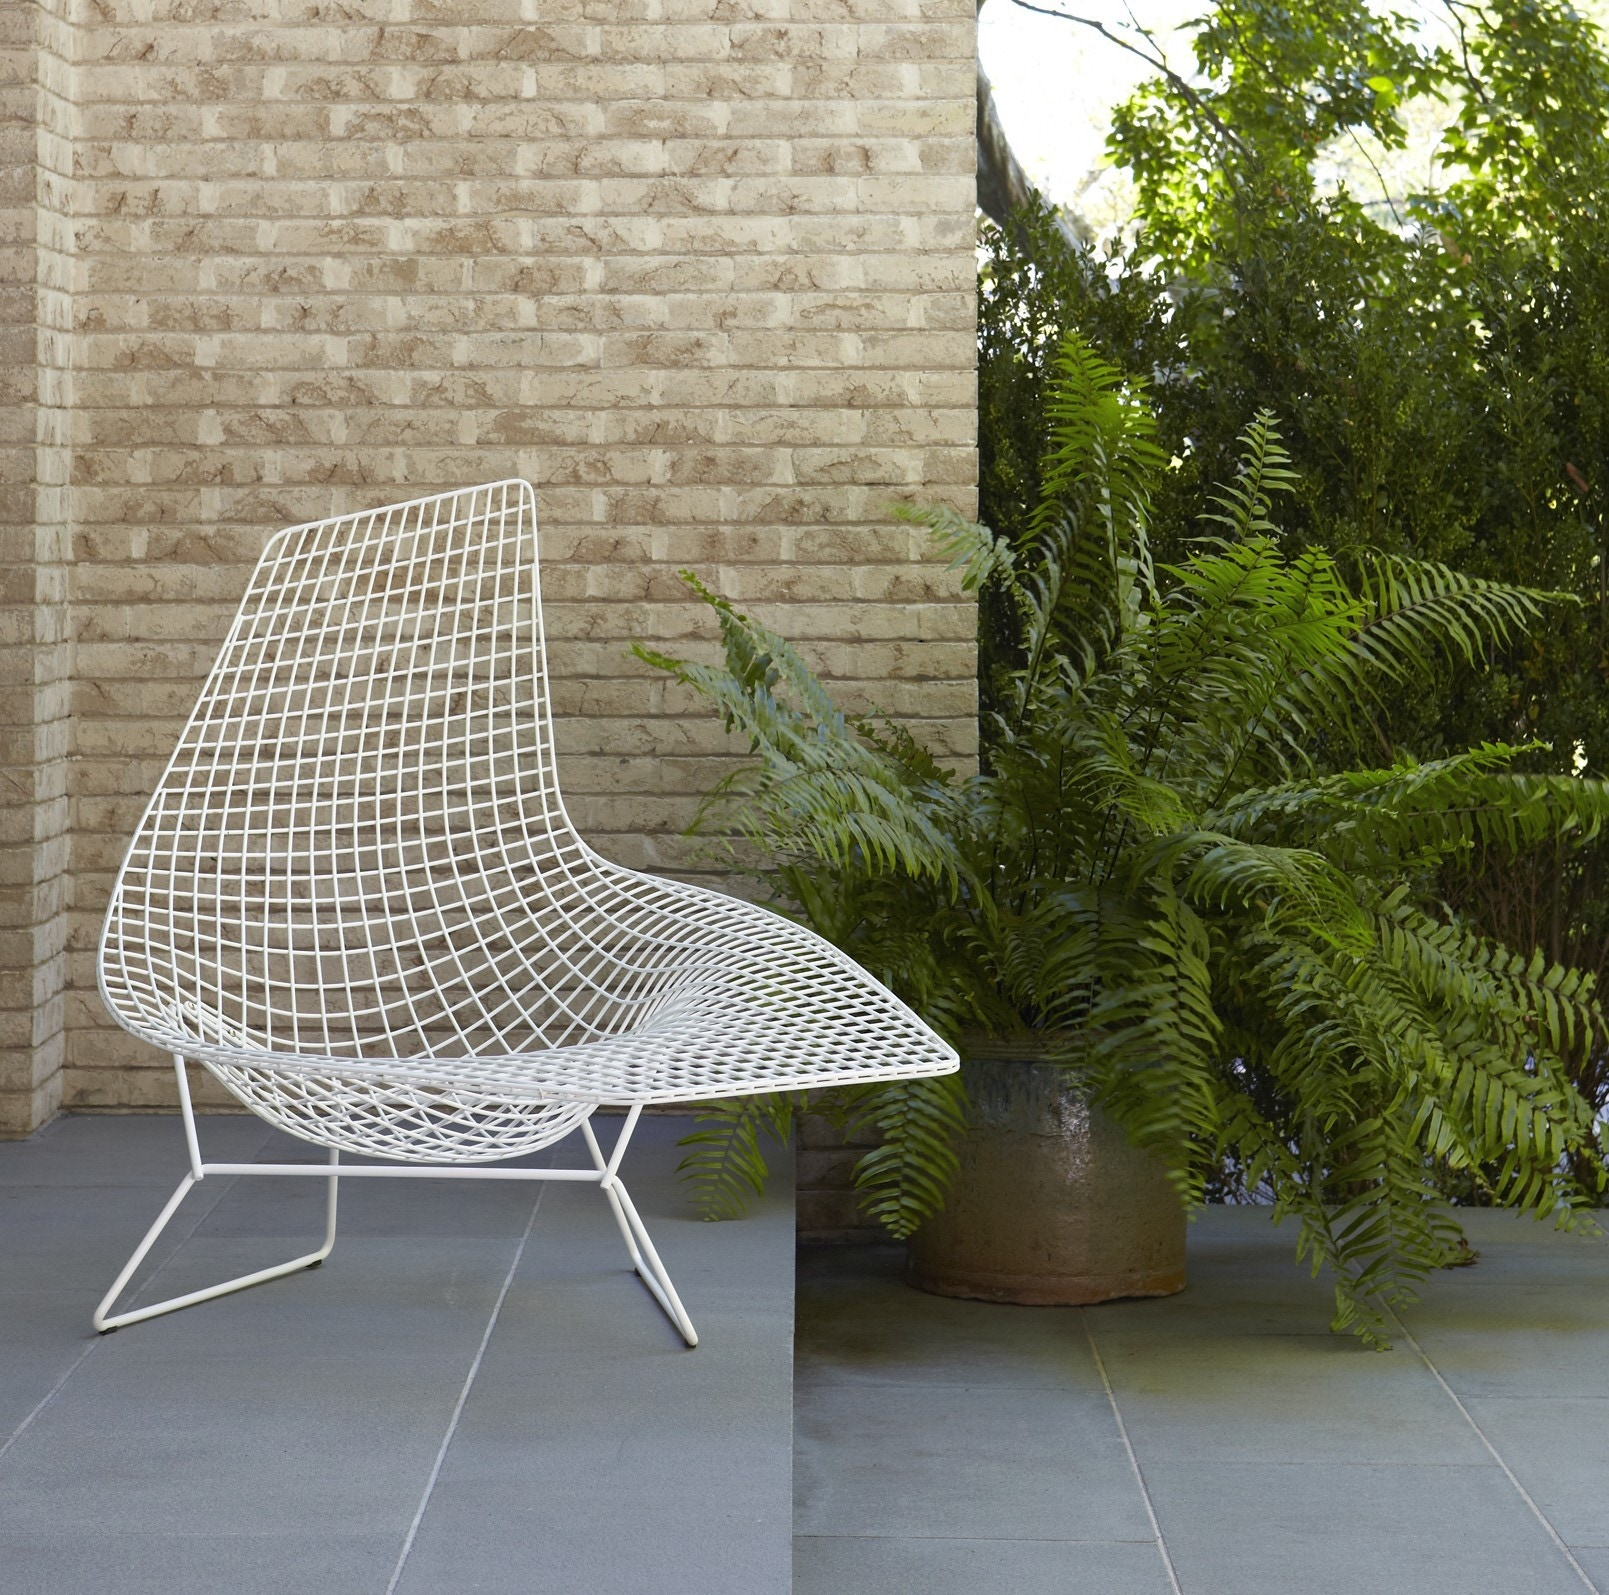 Knoll harry bertoia asymmetric chaise outdoor modern planet for Chaise bertoia knoll prix